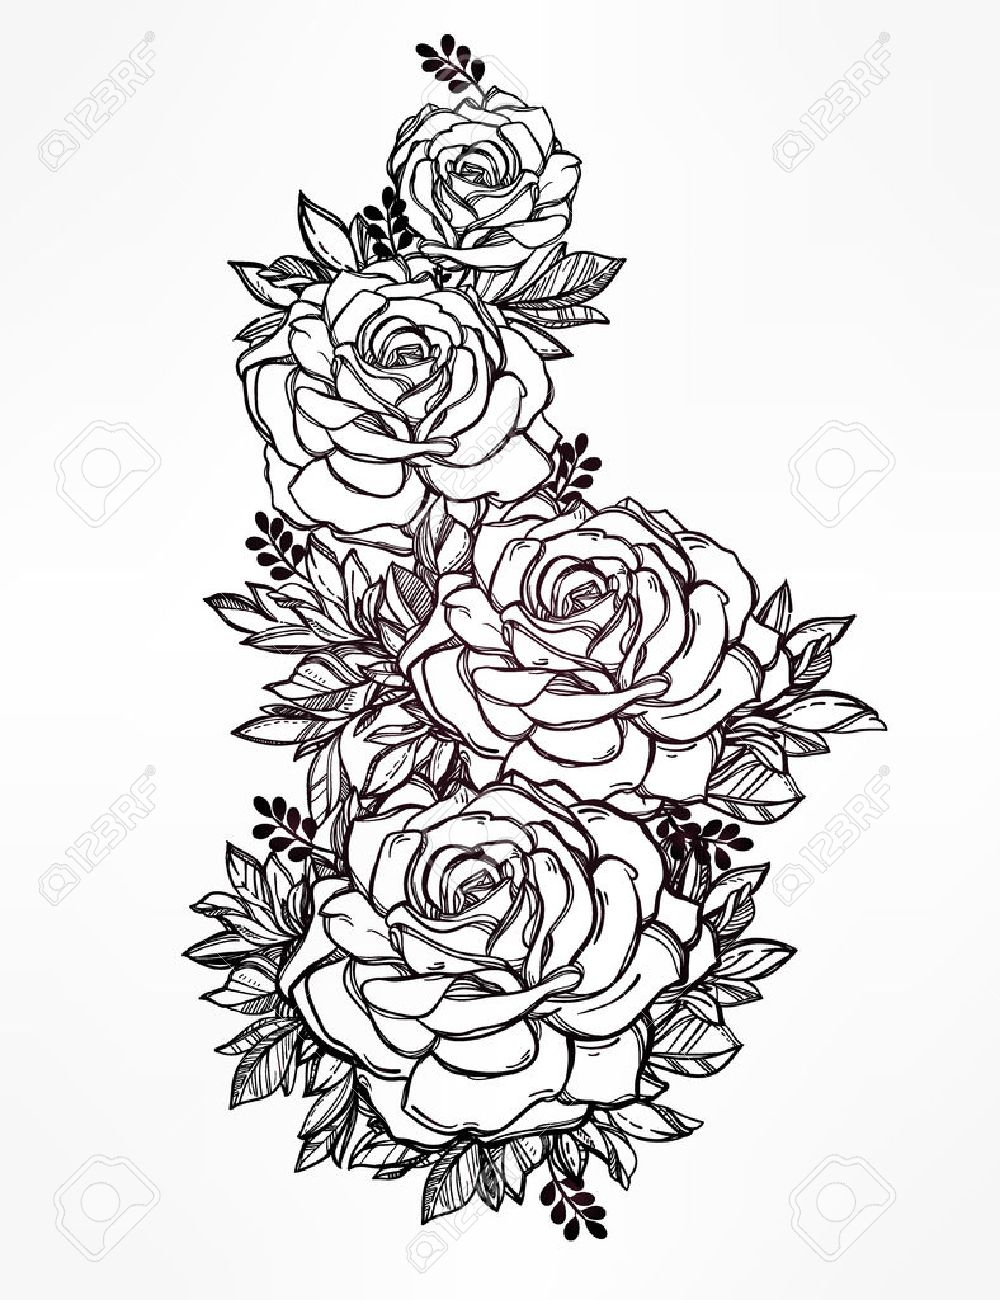 1000x1300 Flower Bunch Tattoo Sketch Vintage Floral Highly Detailed Hand